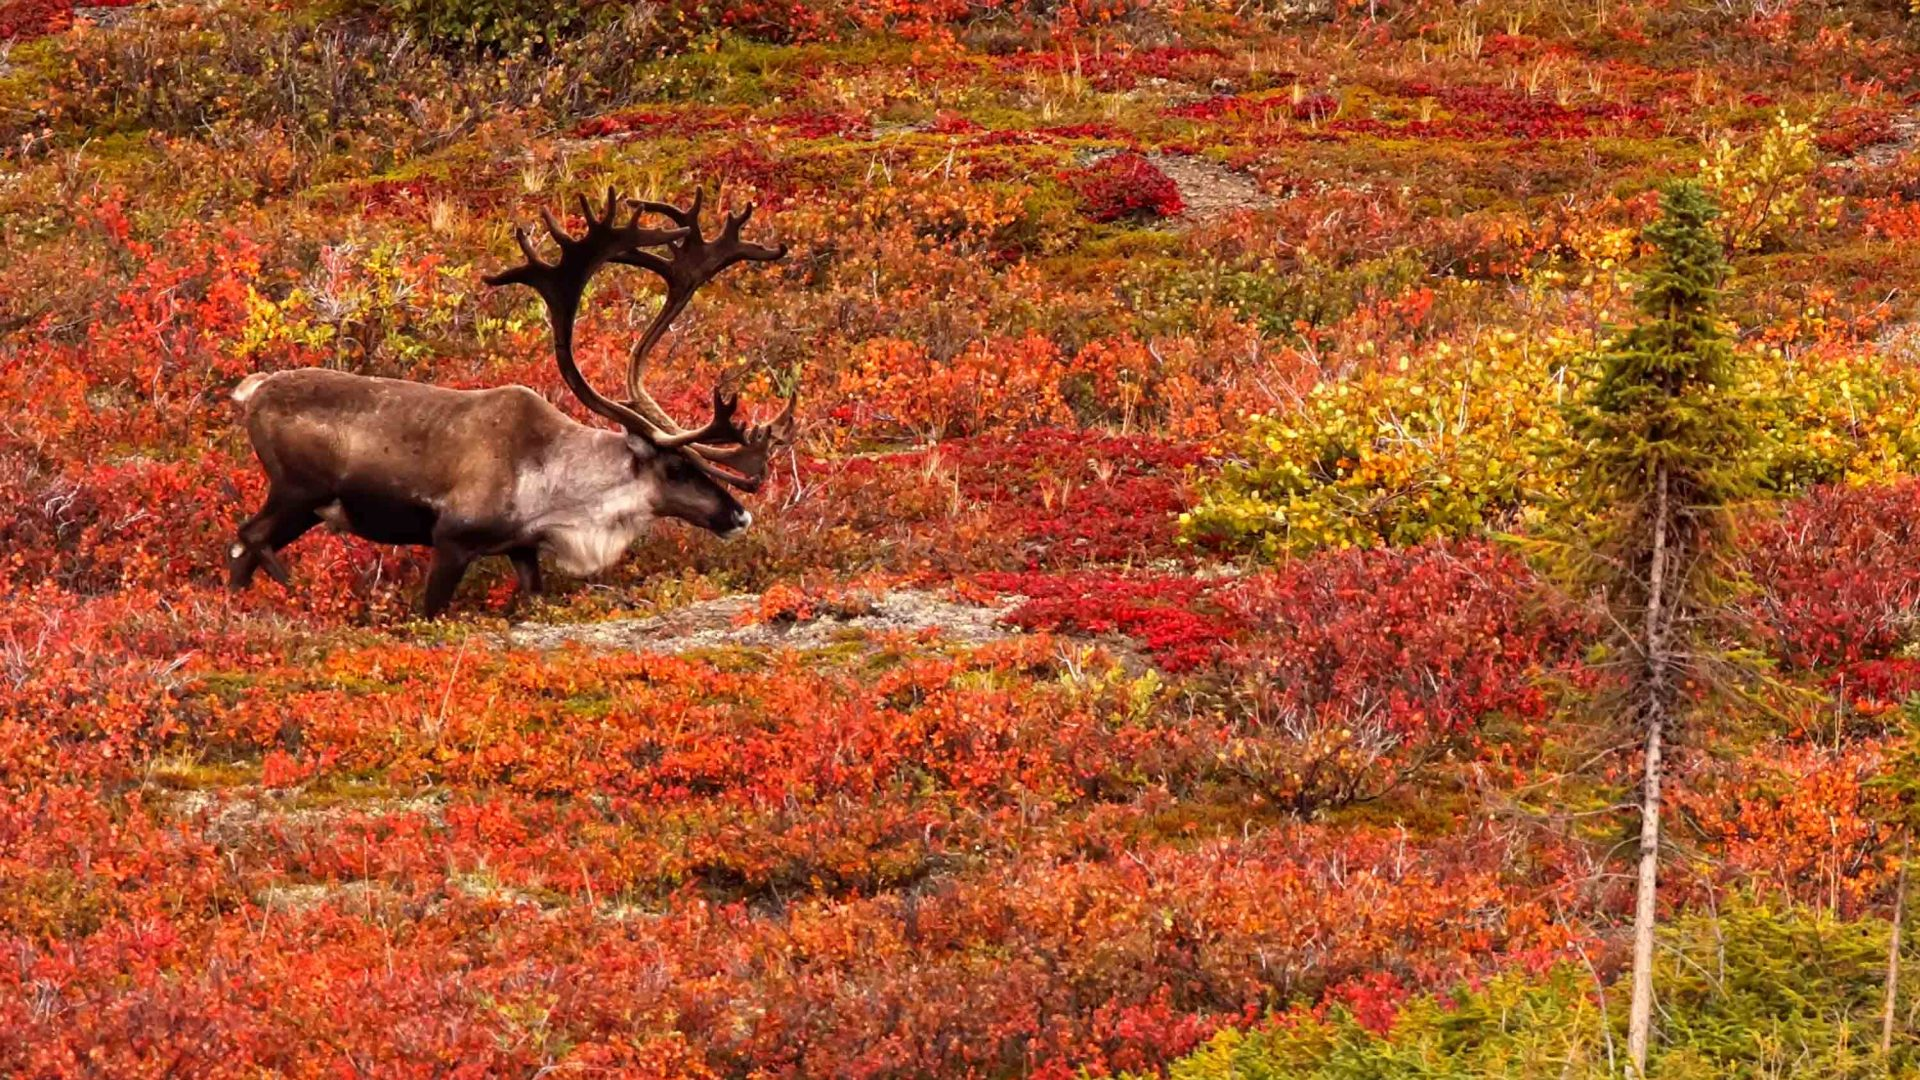 A caribou crosses Dempster Highway during autumn in the Yukon.